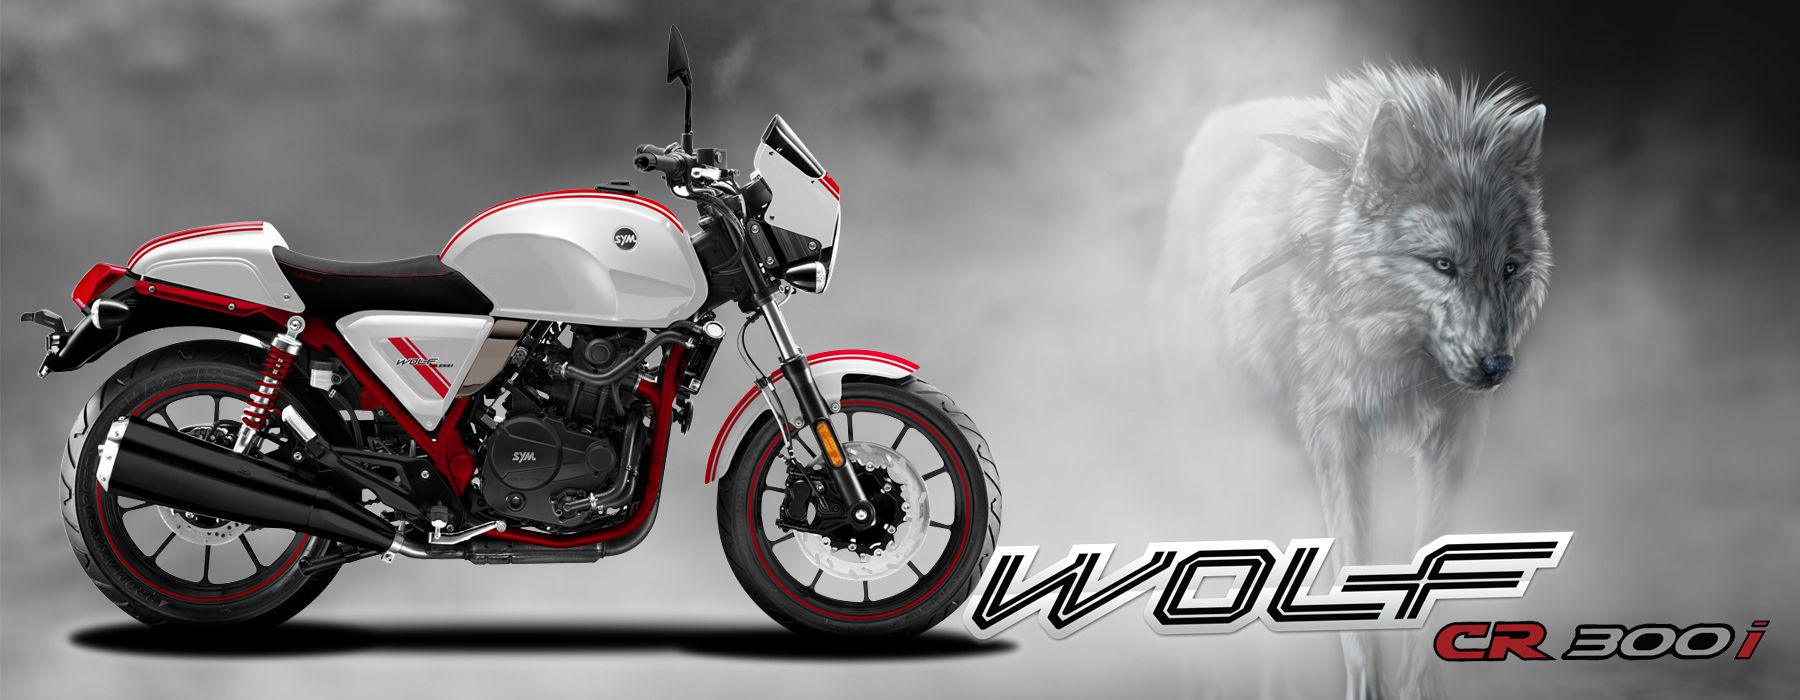 SYM motorcycles